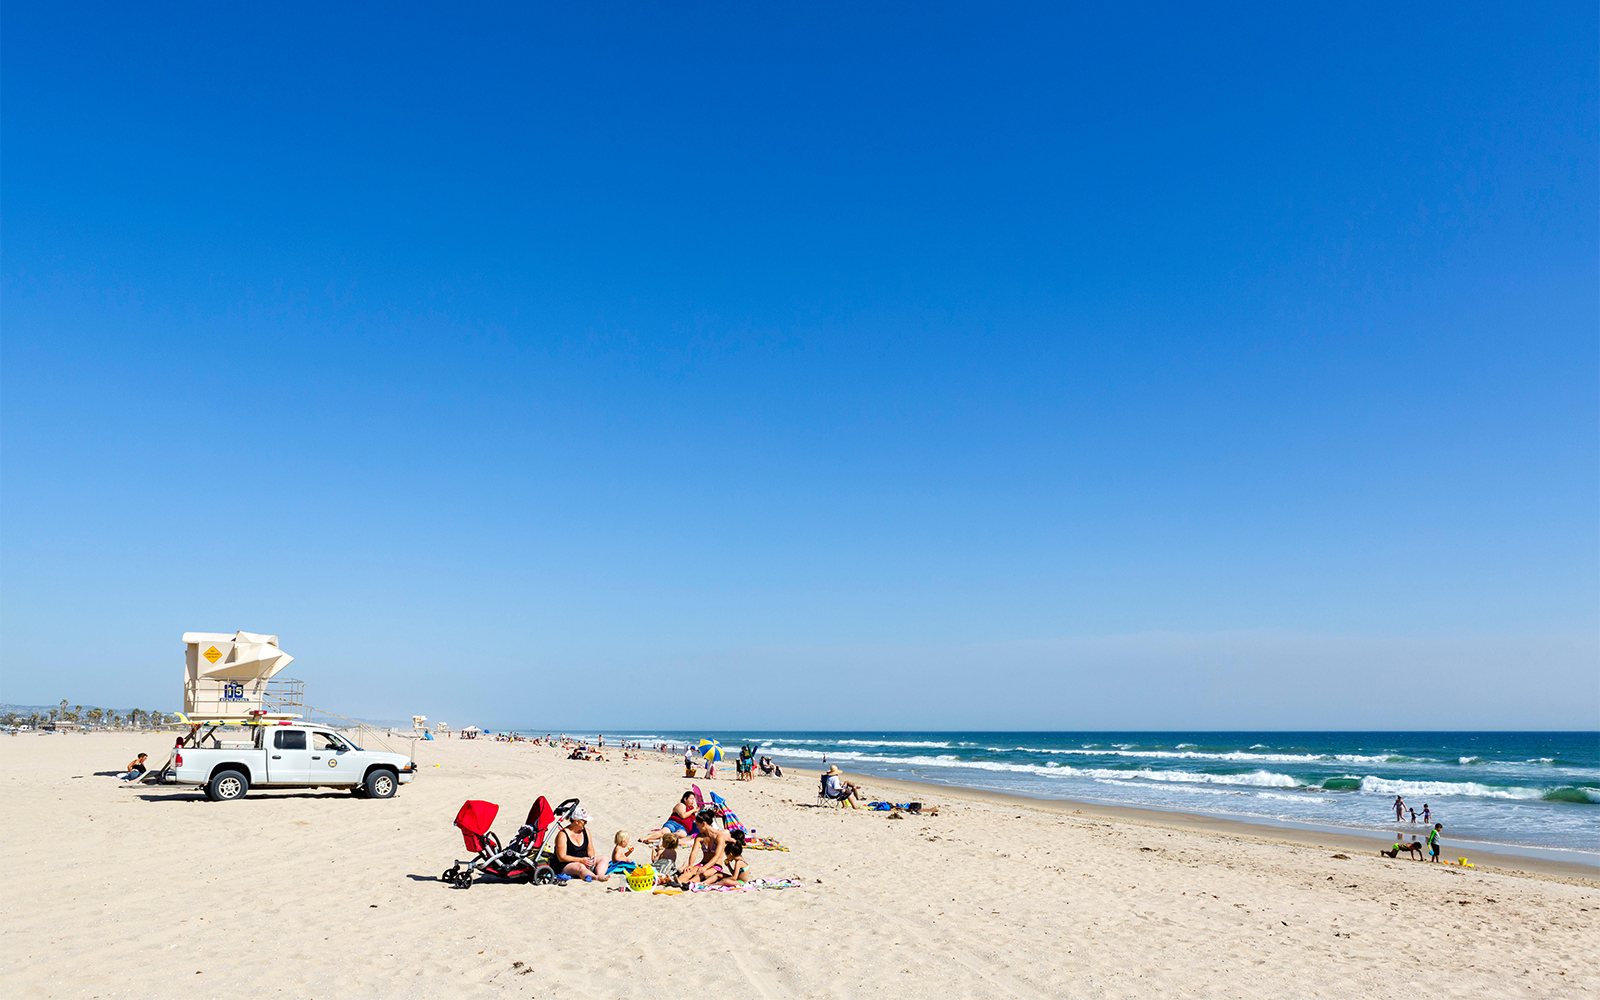 America's Best Cities for Picnics: No. 3 Los Angeles